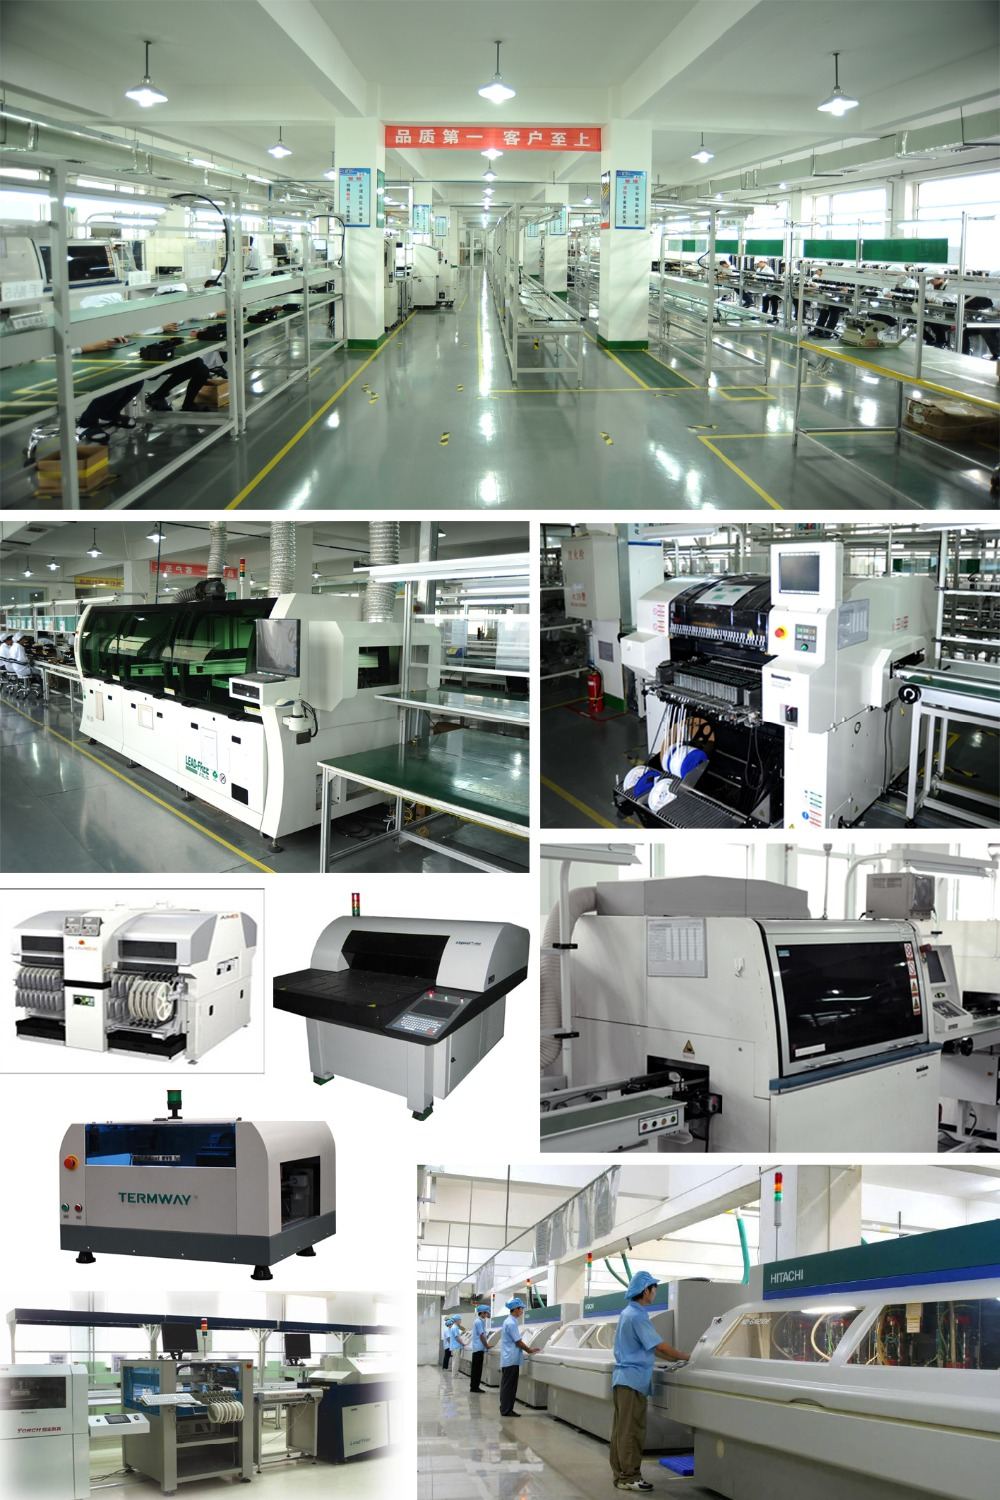 Printed Circuit Board Assembly Am Fm Radio Pcb Buy In Shenzhen Factory The Size Of Our 94v 0 Manufacturer Blank Boards